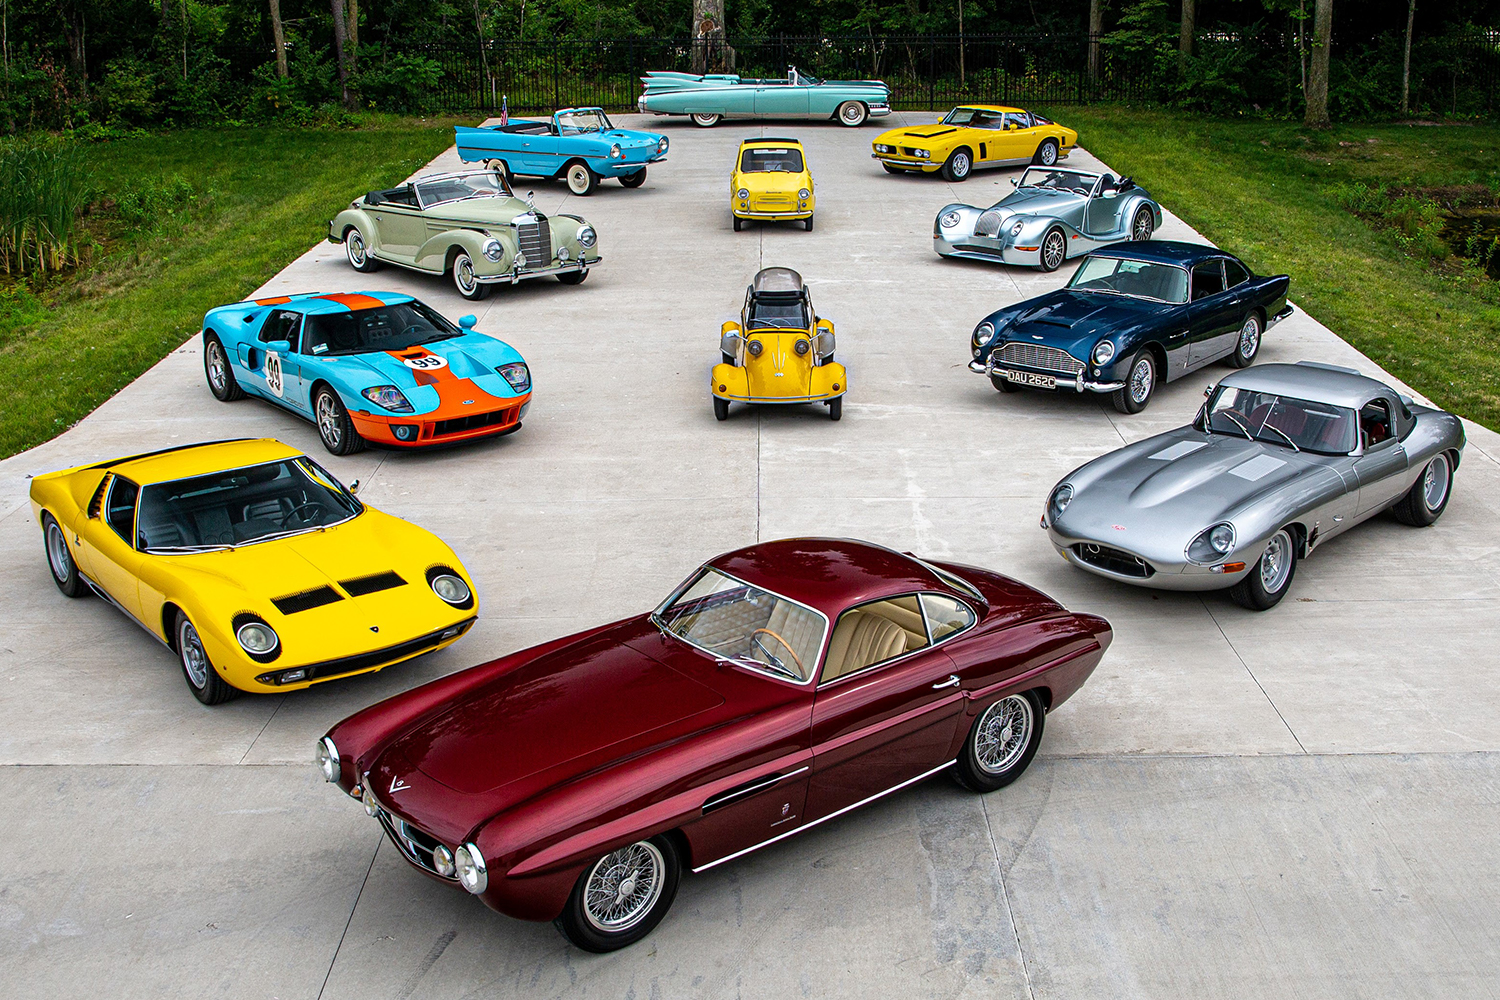 The Elkhart Collection cars being auctioned off at RM Sotheby's